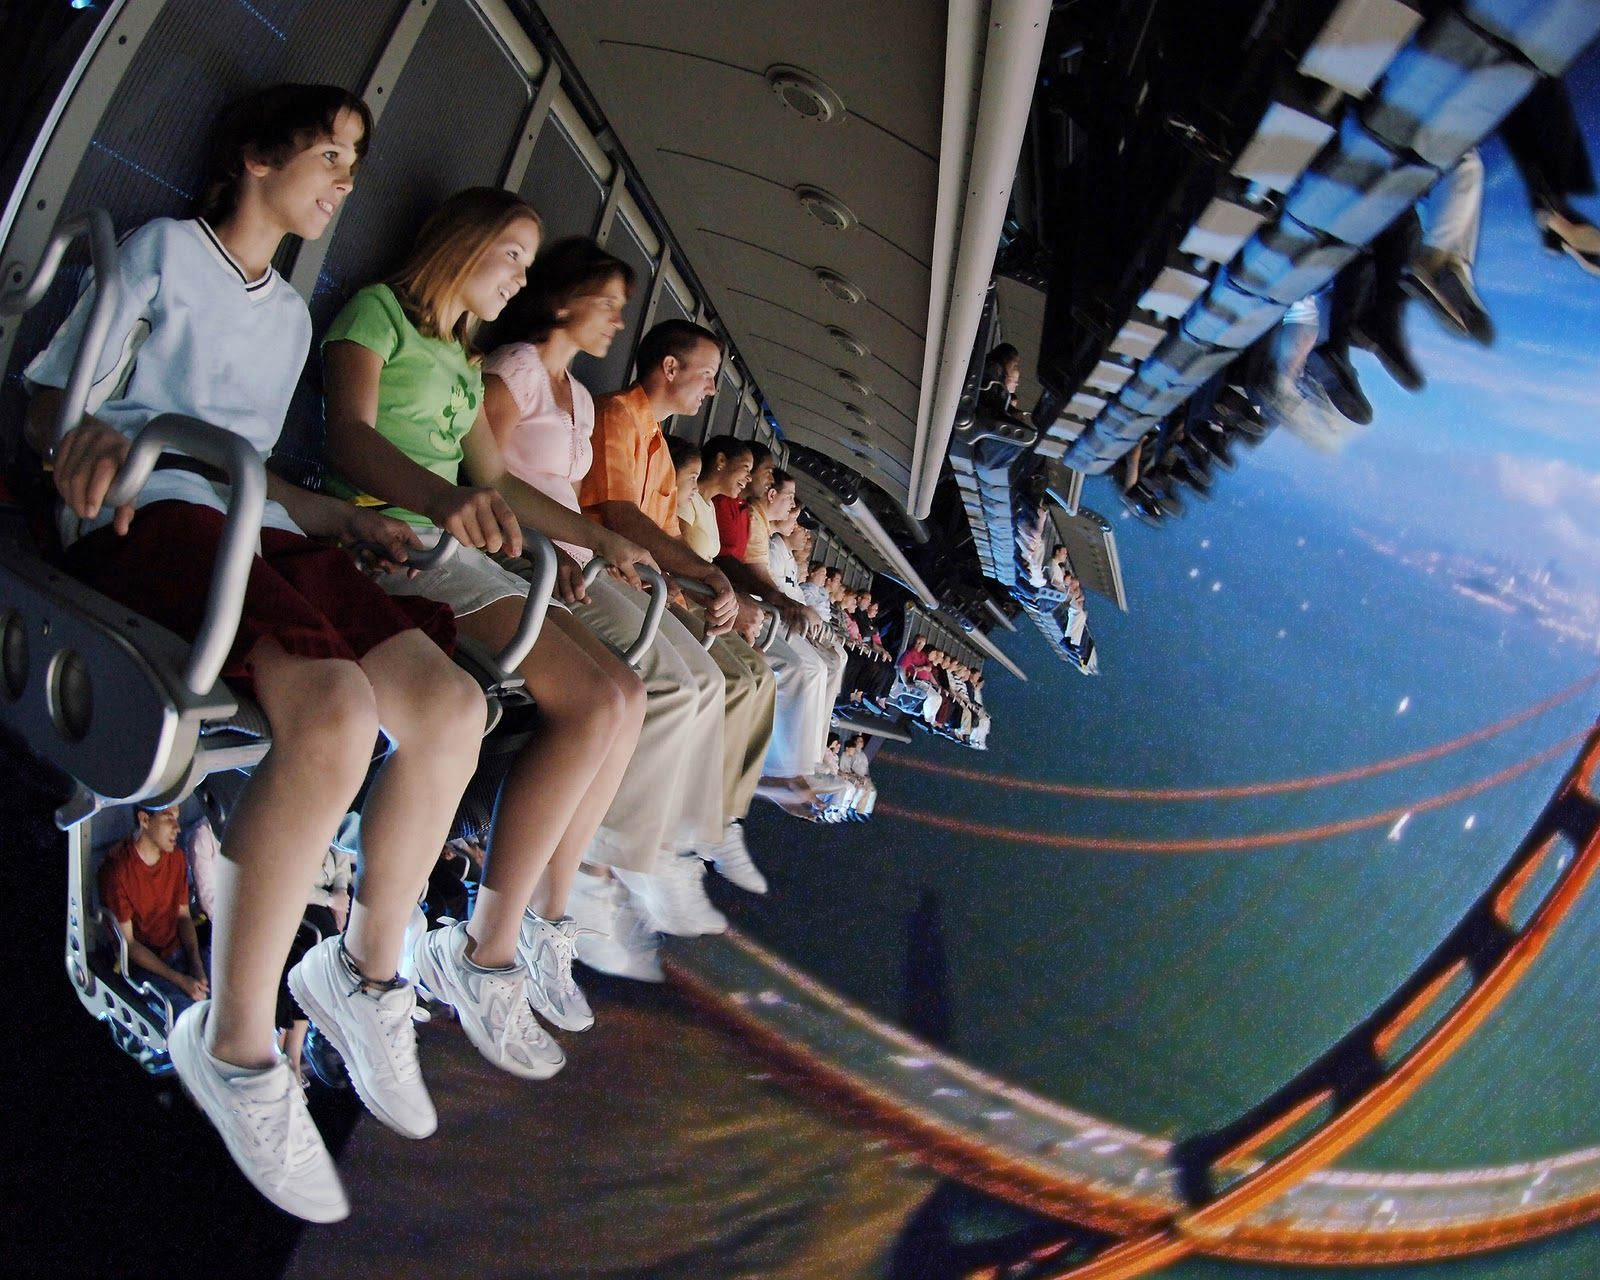 The Best Rides And Attractions At Epcot In Disney World That You